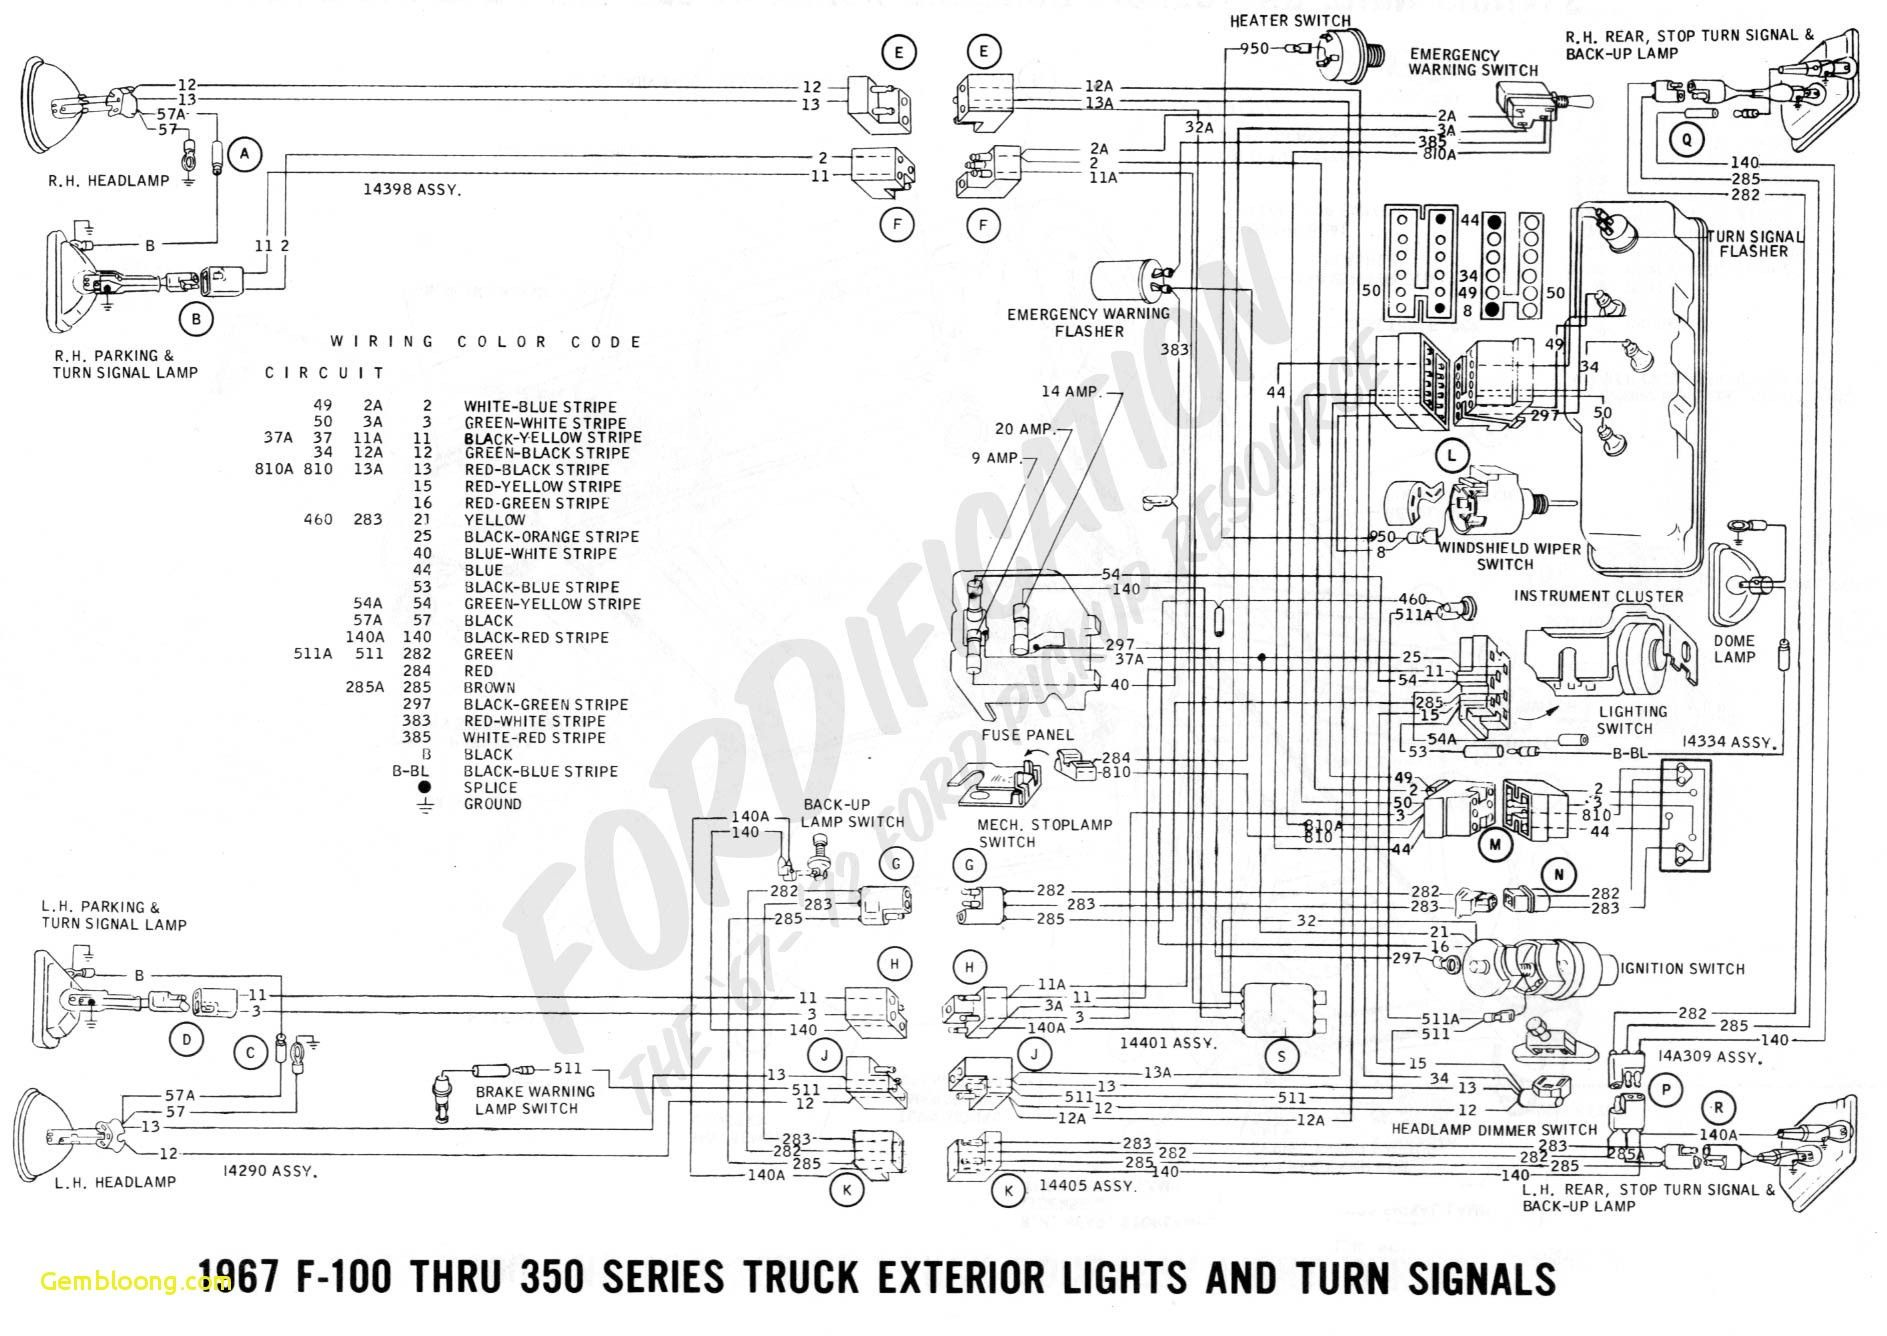 Unique Central Heating Wiring Diagram Uk Diagramsample